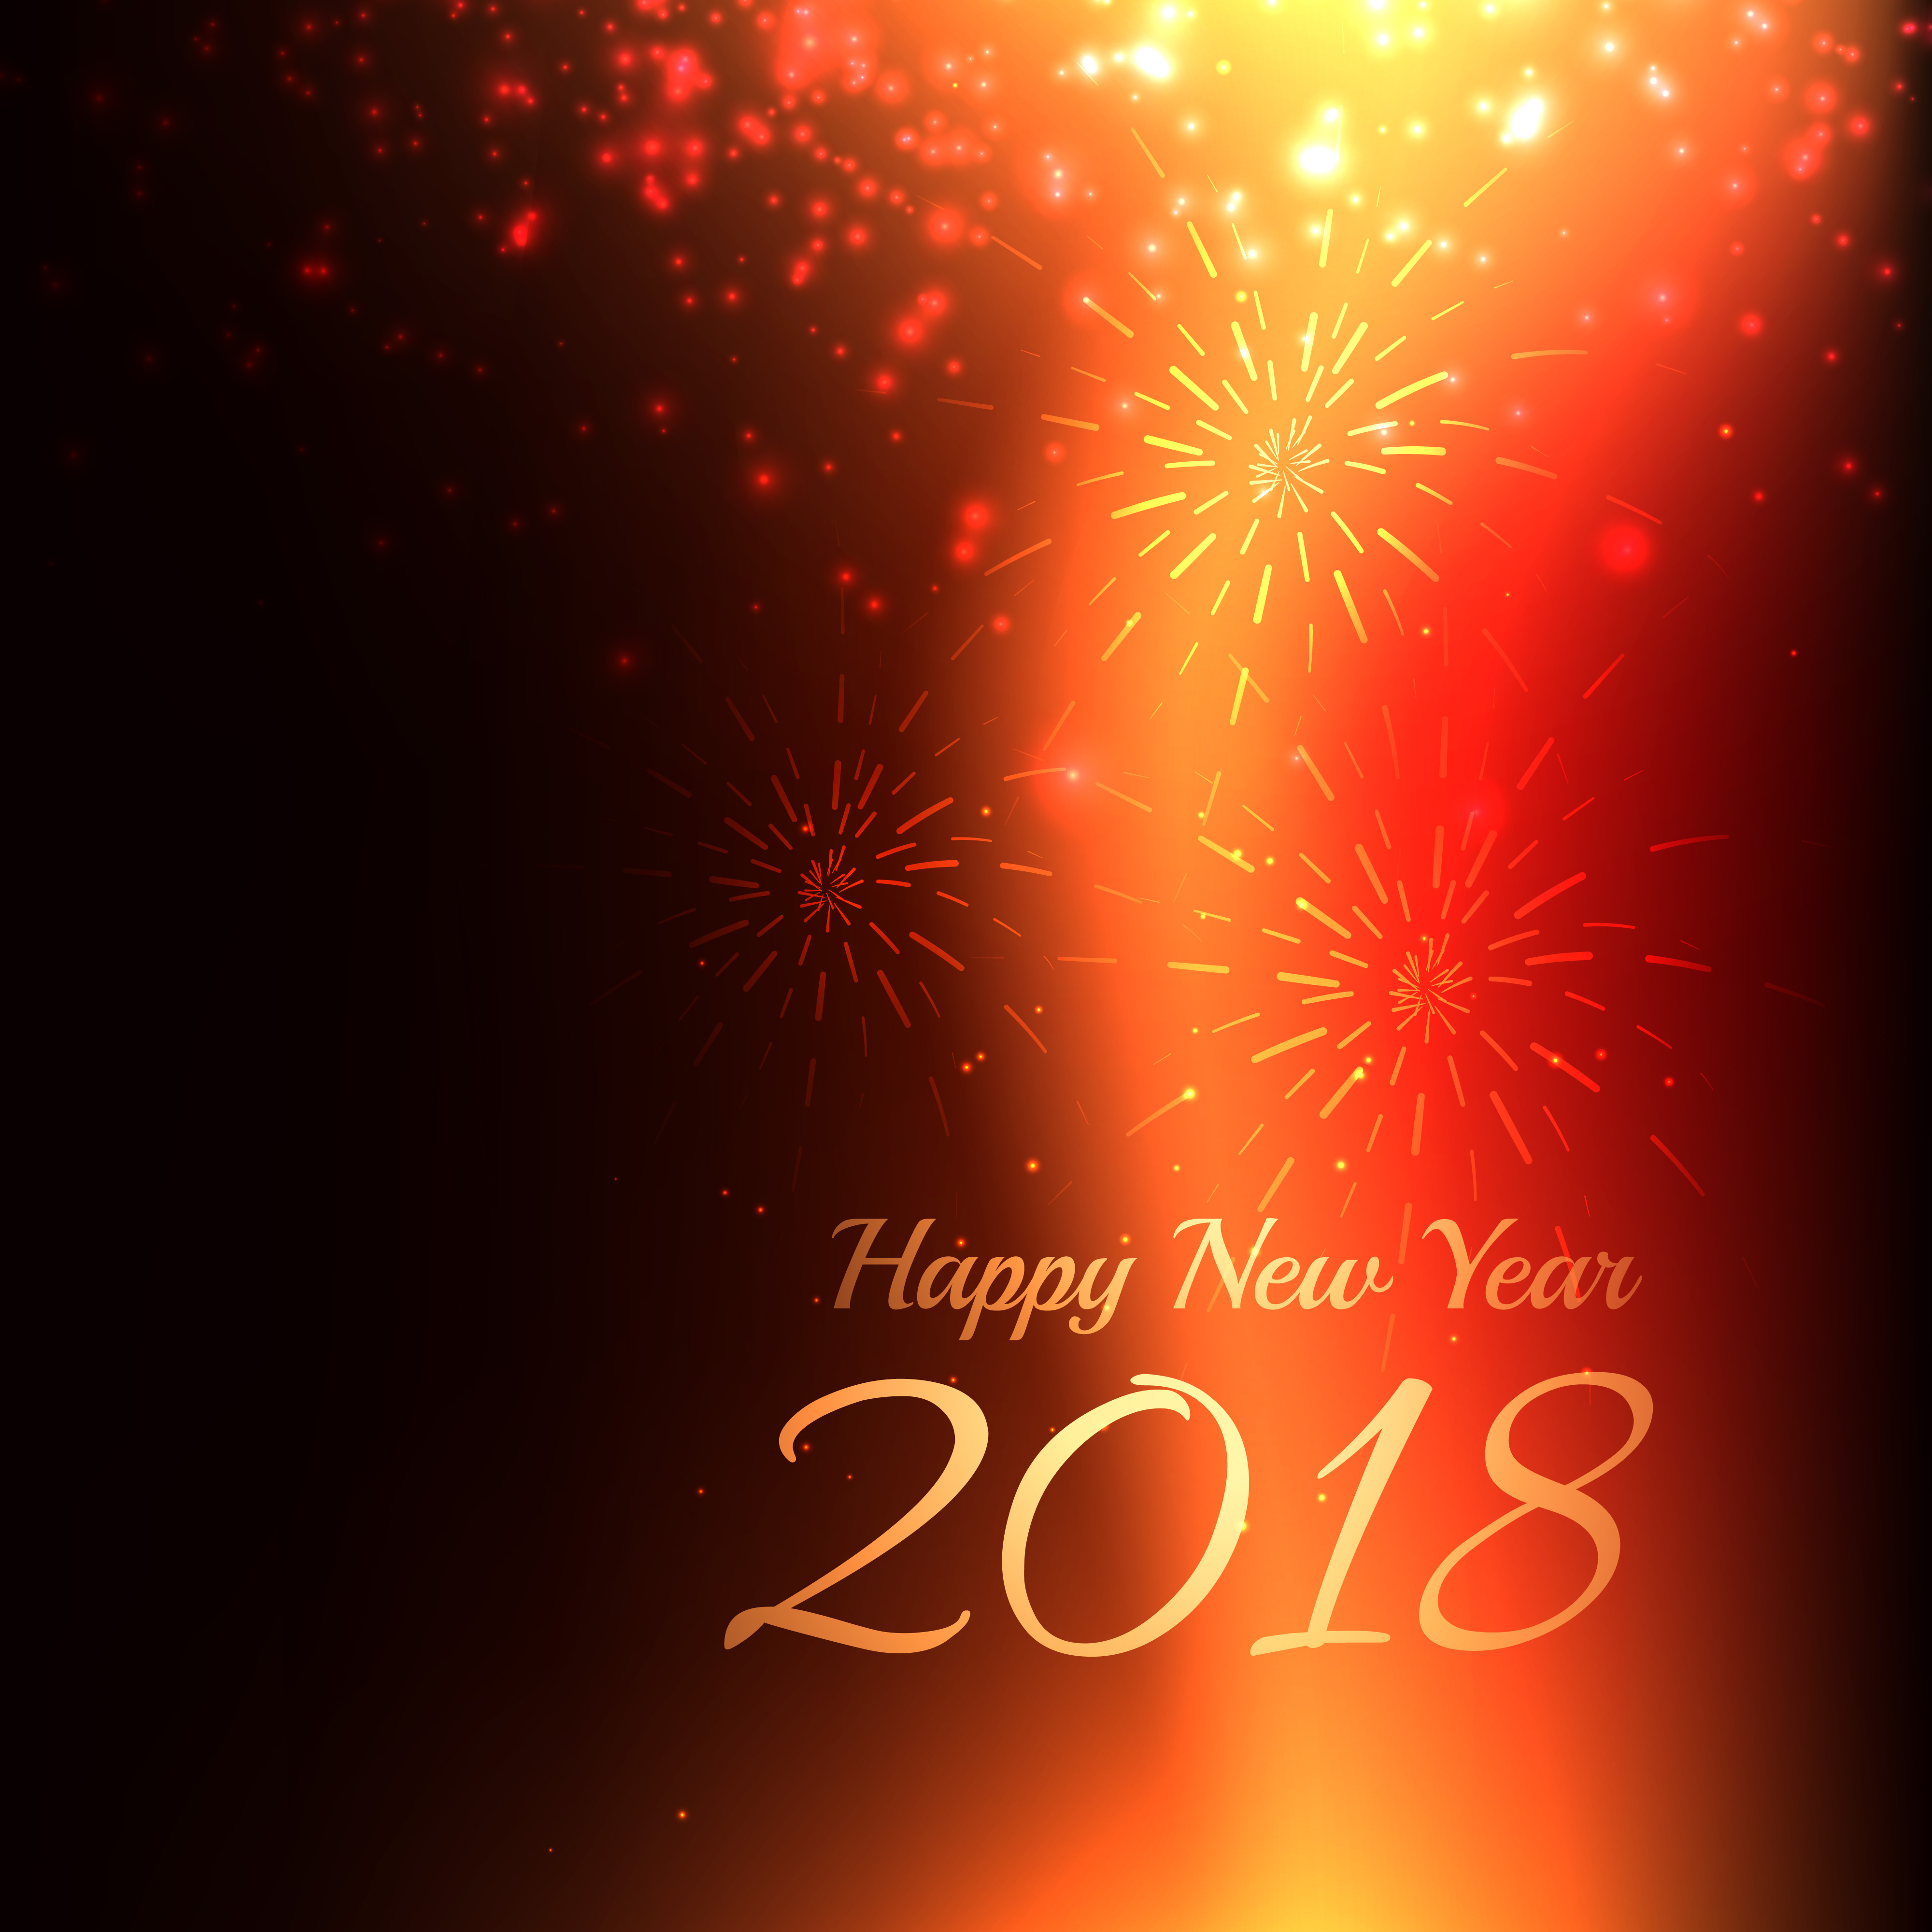 Happy New Year 2018 Background With Light Effect